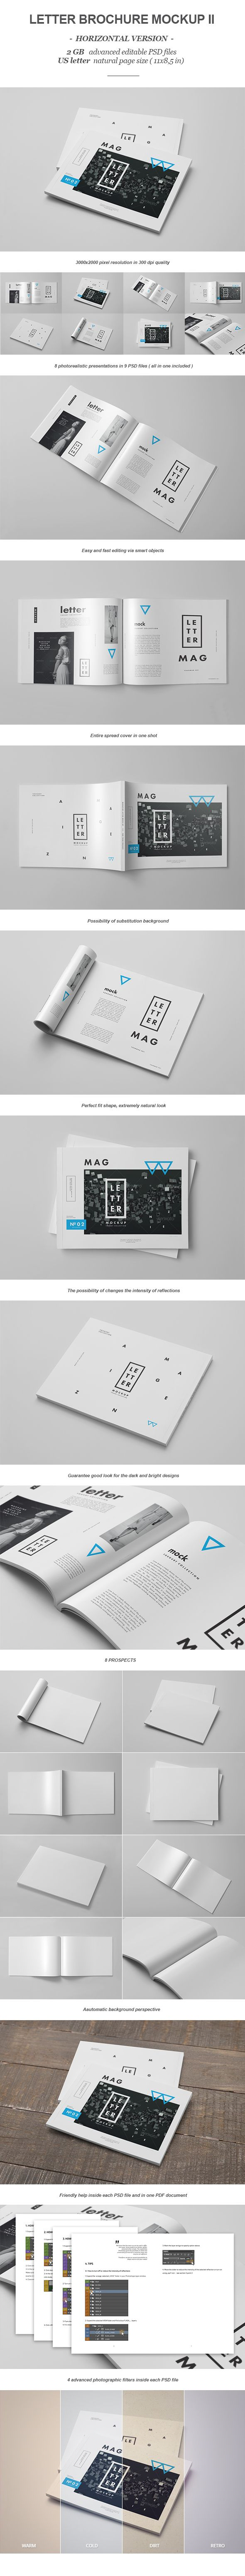 Photorealistic LETTER magazine/borchure/catalog mock-up. So much in 9 PSD files…